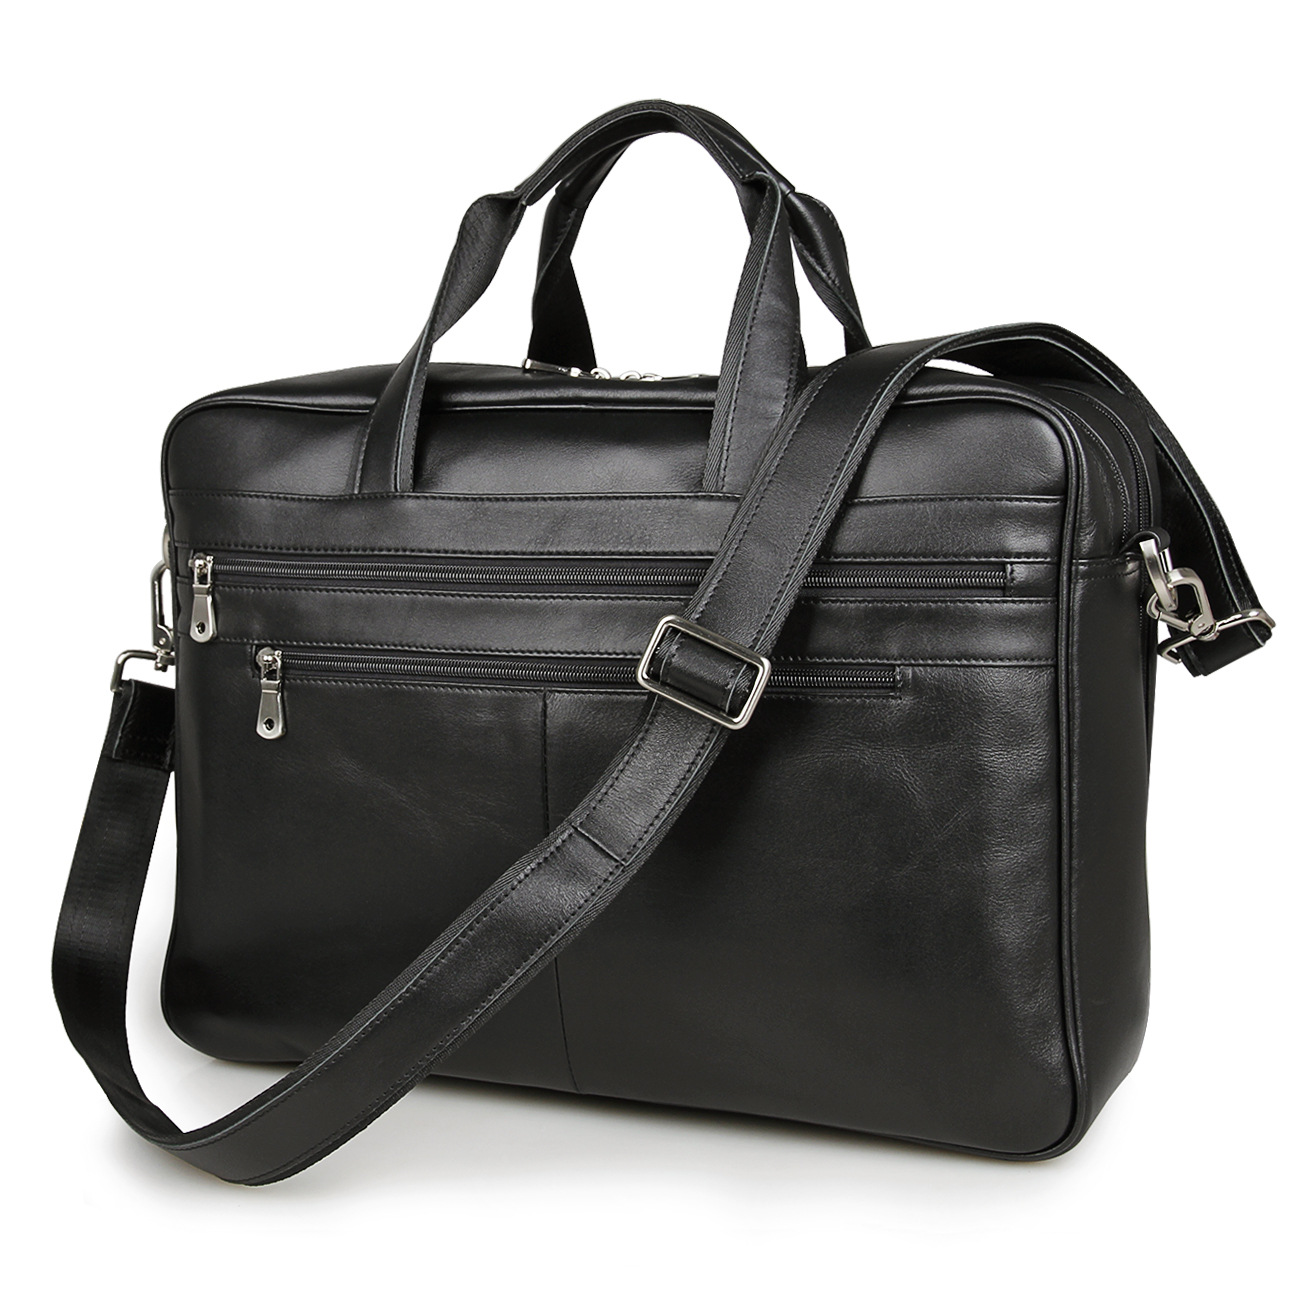 Men 100% Casual Briefcase Business Shoulder Genuine Leather Bag Men Messenger Bag Computer Laptop Handbag Bag Men's Travel Bags 2018 men casual briefcase business shoulder bag genuine leather men s travel messenger bags computer laptop handbag